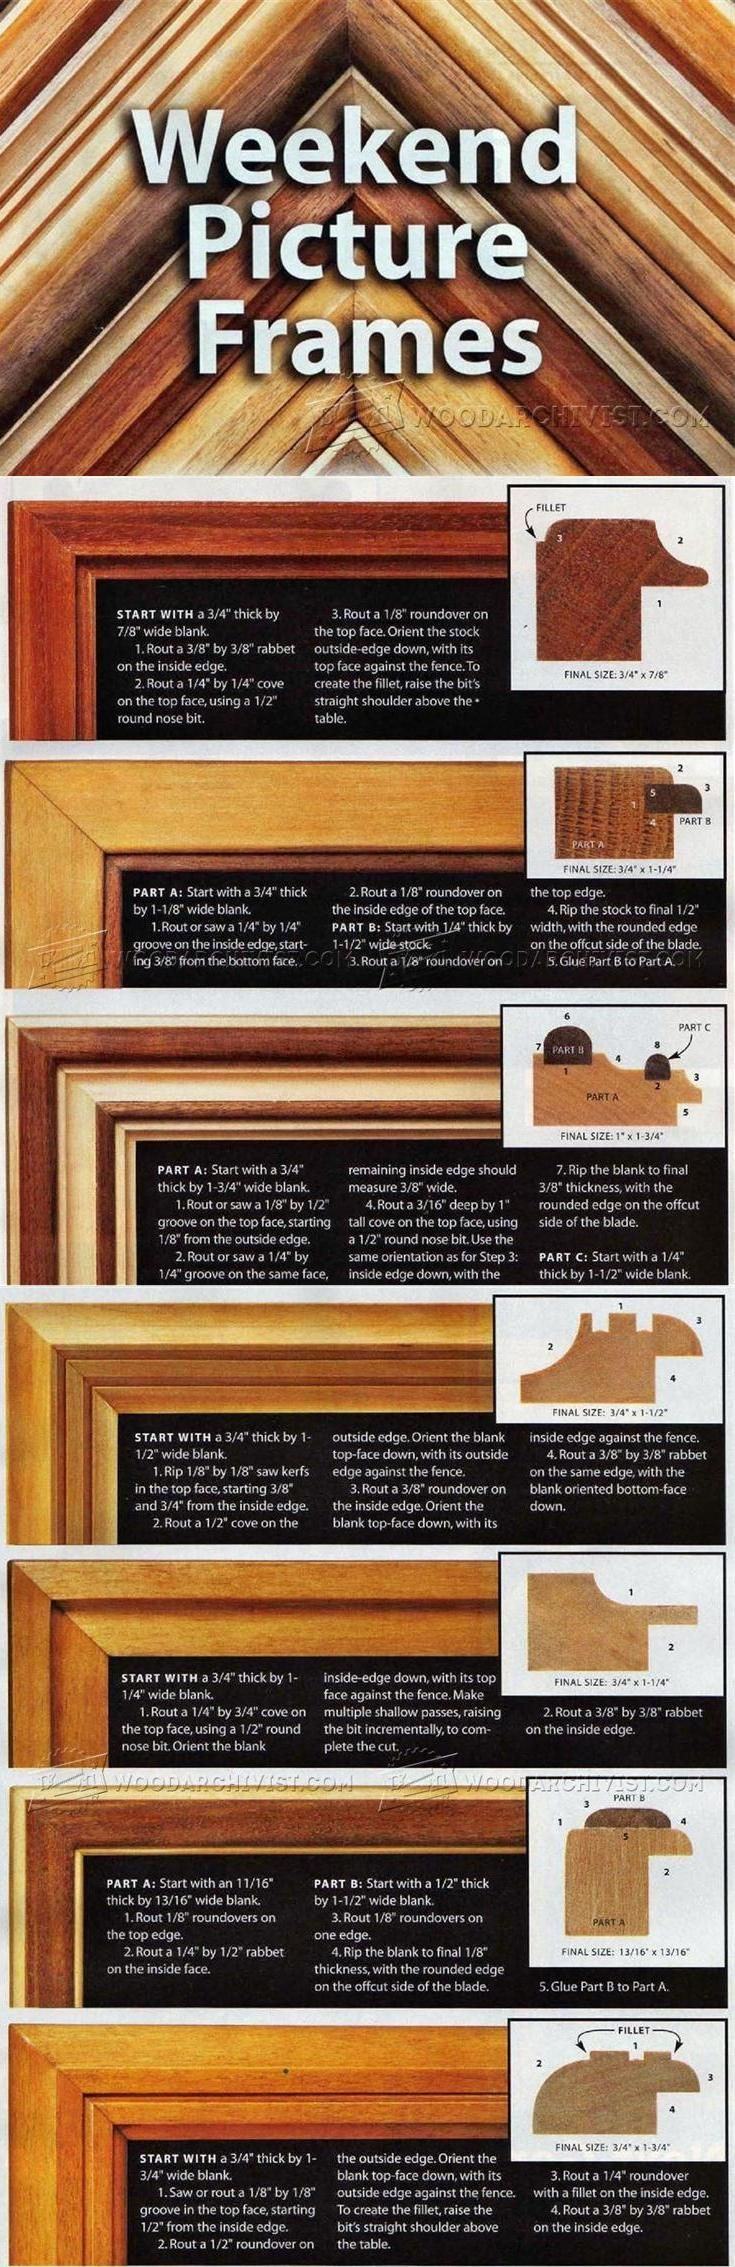 A 1 Custom Cabinets 25 Best Ideas About Router Woodworking On Pinterest Woodworking